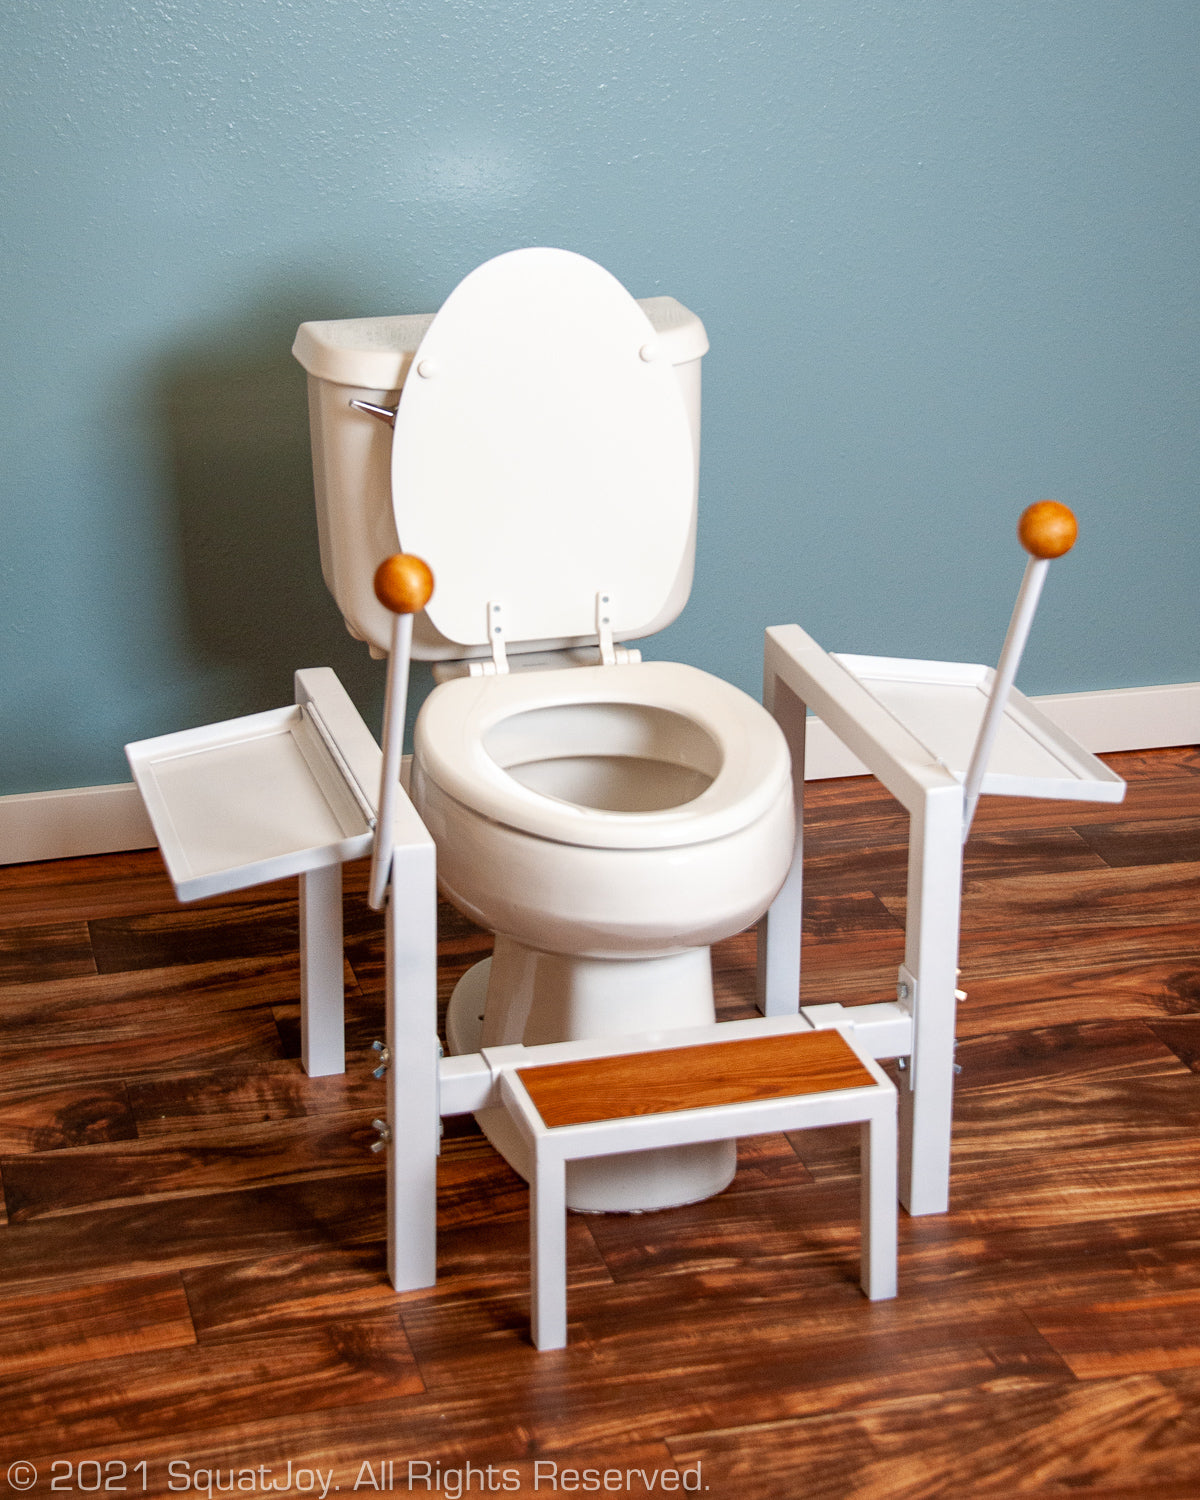 Full squat for toilet seat